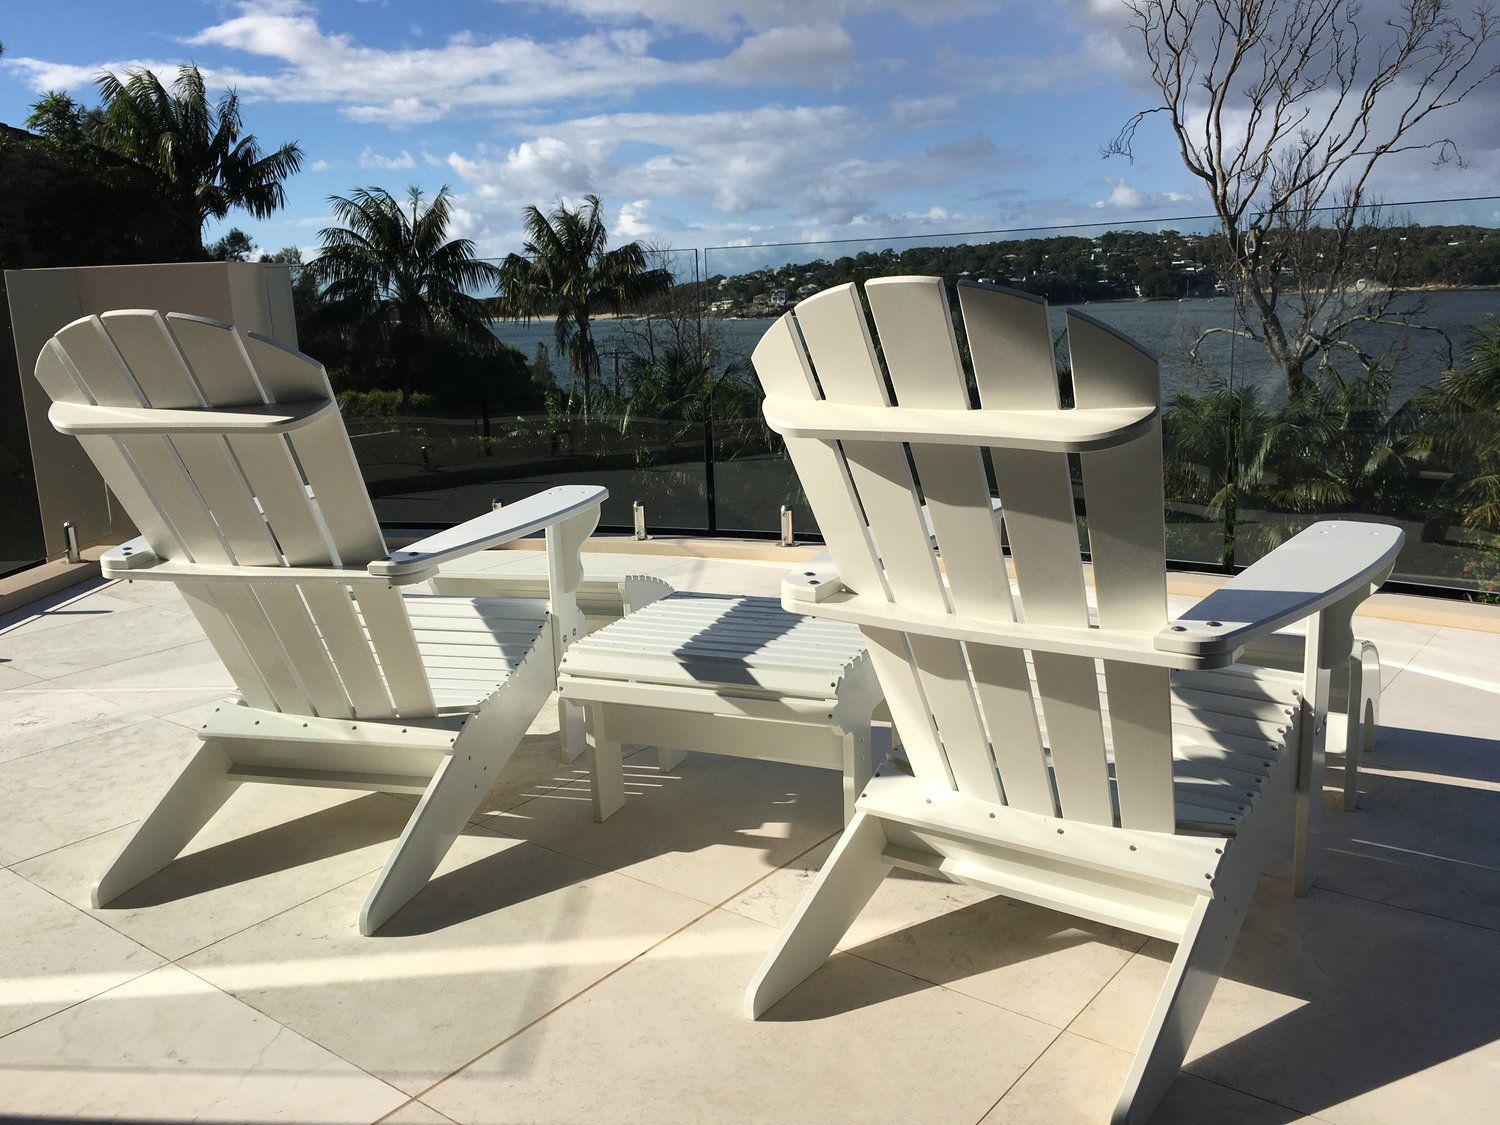 What You Need to Know About Adirondack Chairs Diy chair